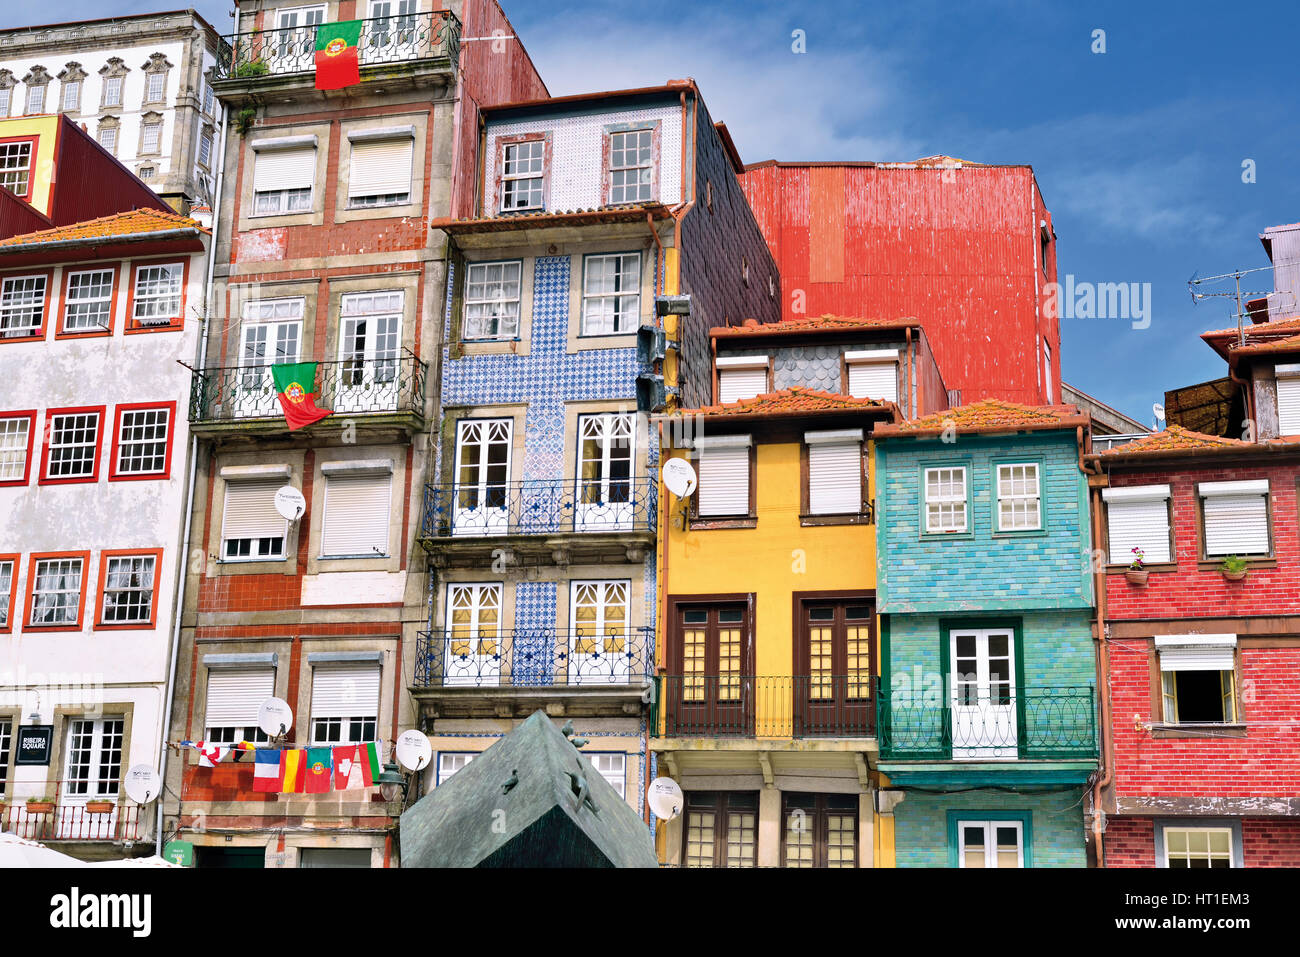 Portugal: Traditional houses in the riverside township Ribeira in Oporto - Stock Image